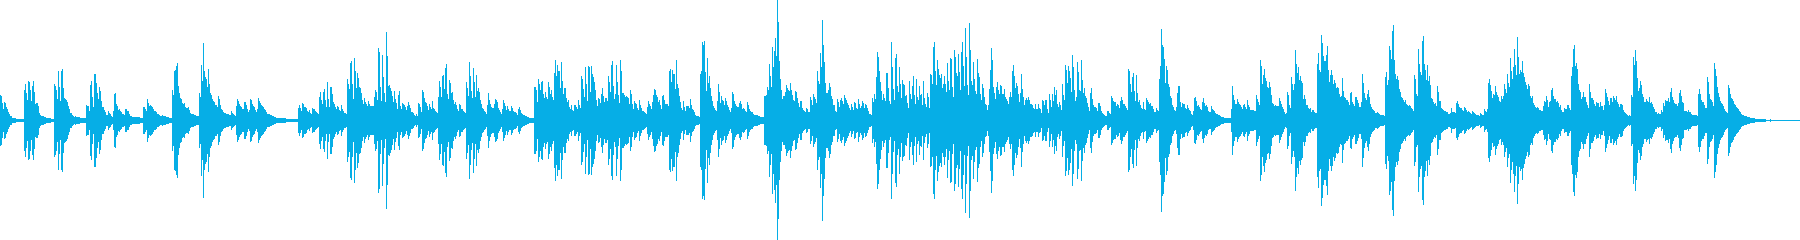 At the end of sadness and despair (piano)'s reproduced waveform